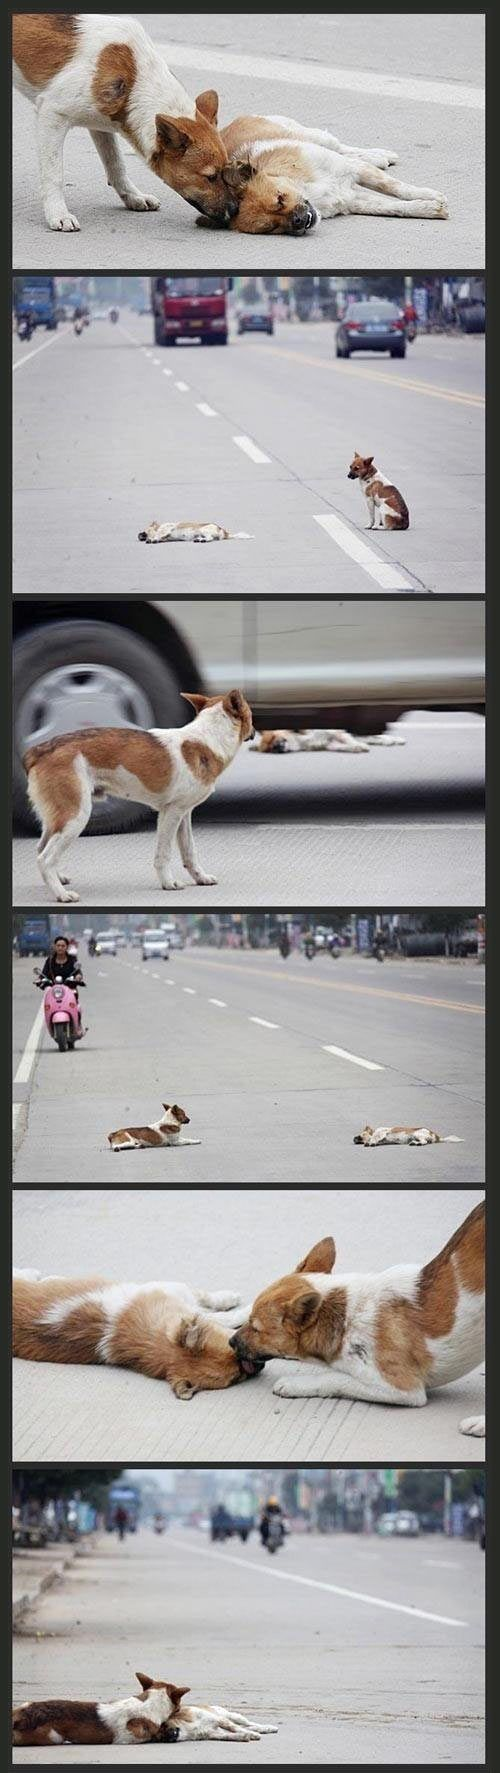 Sometimes animals show more compassion & humanity than most people. ❤️